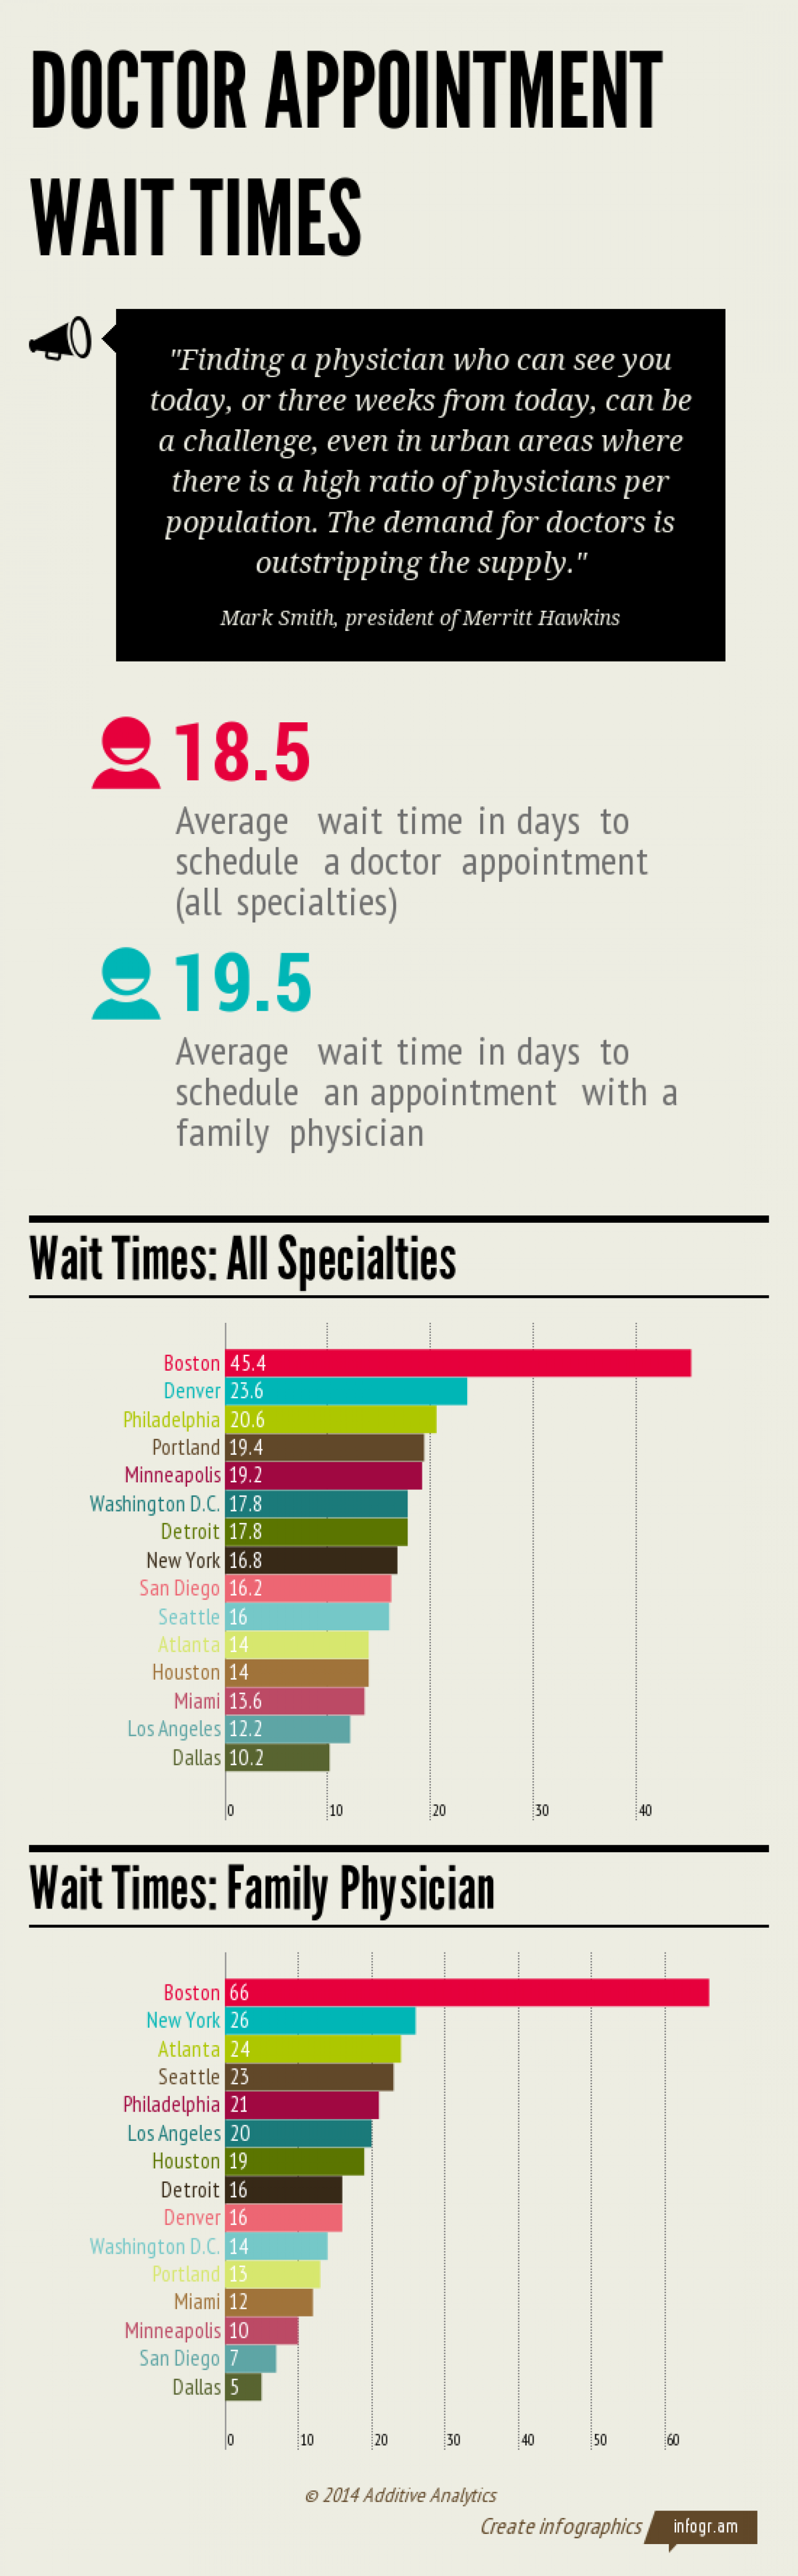 Doctor Appointment Wait Times Infographic